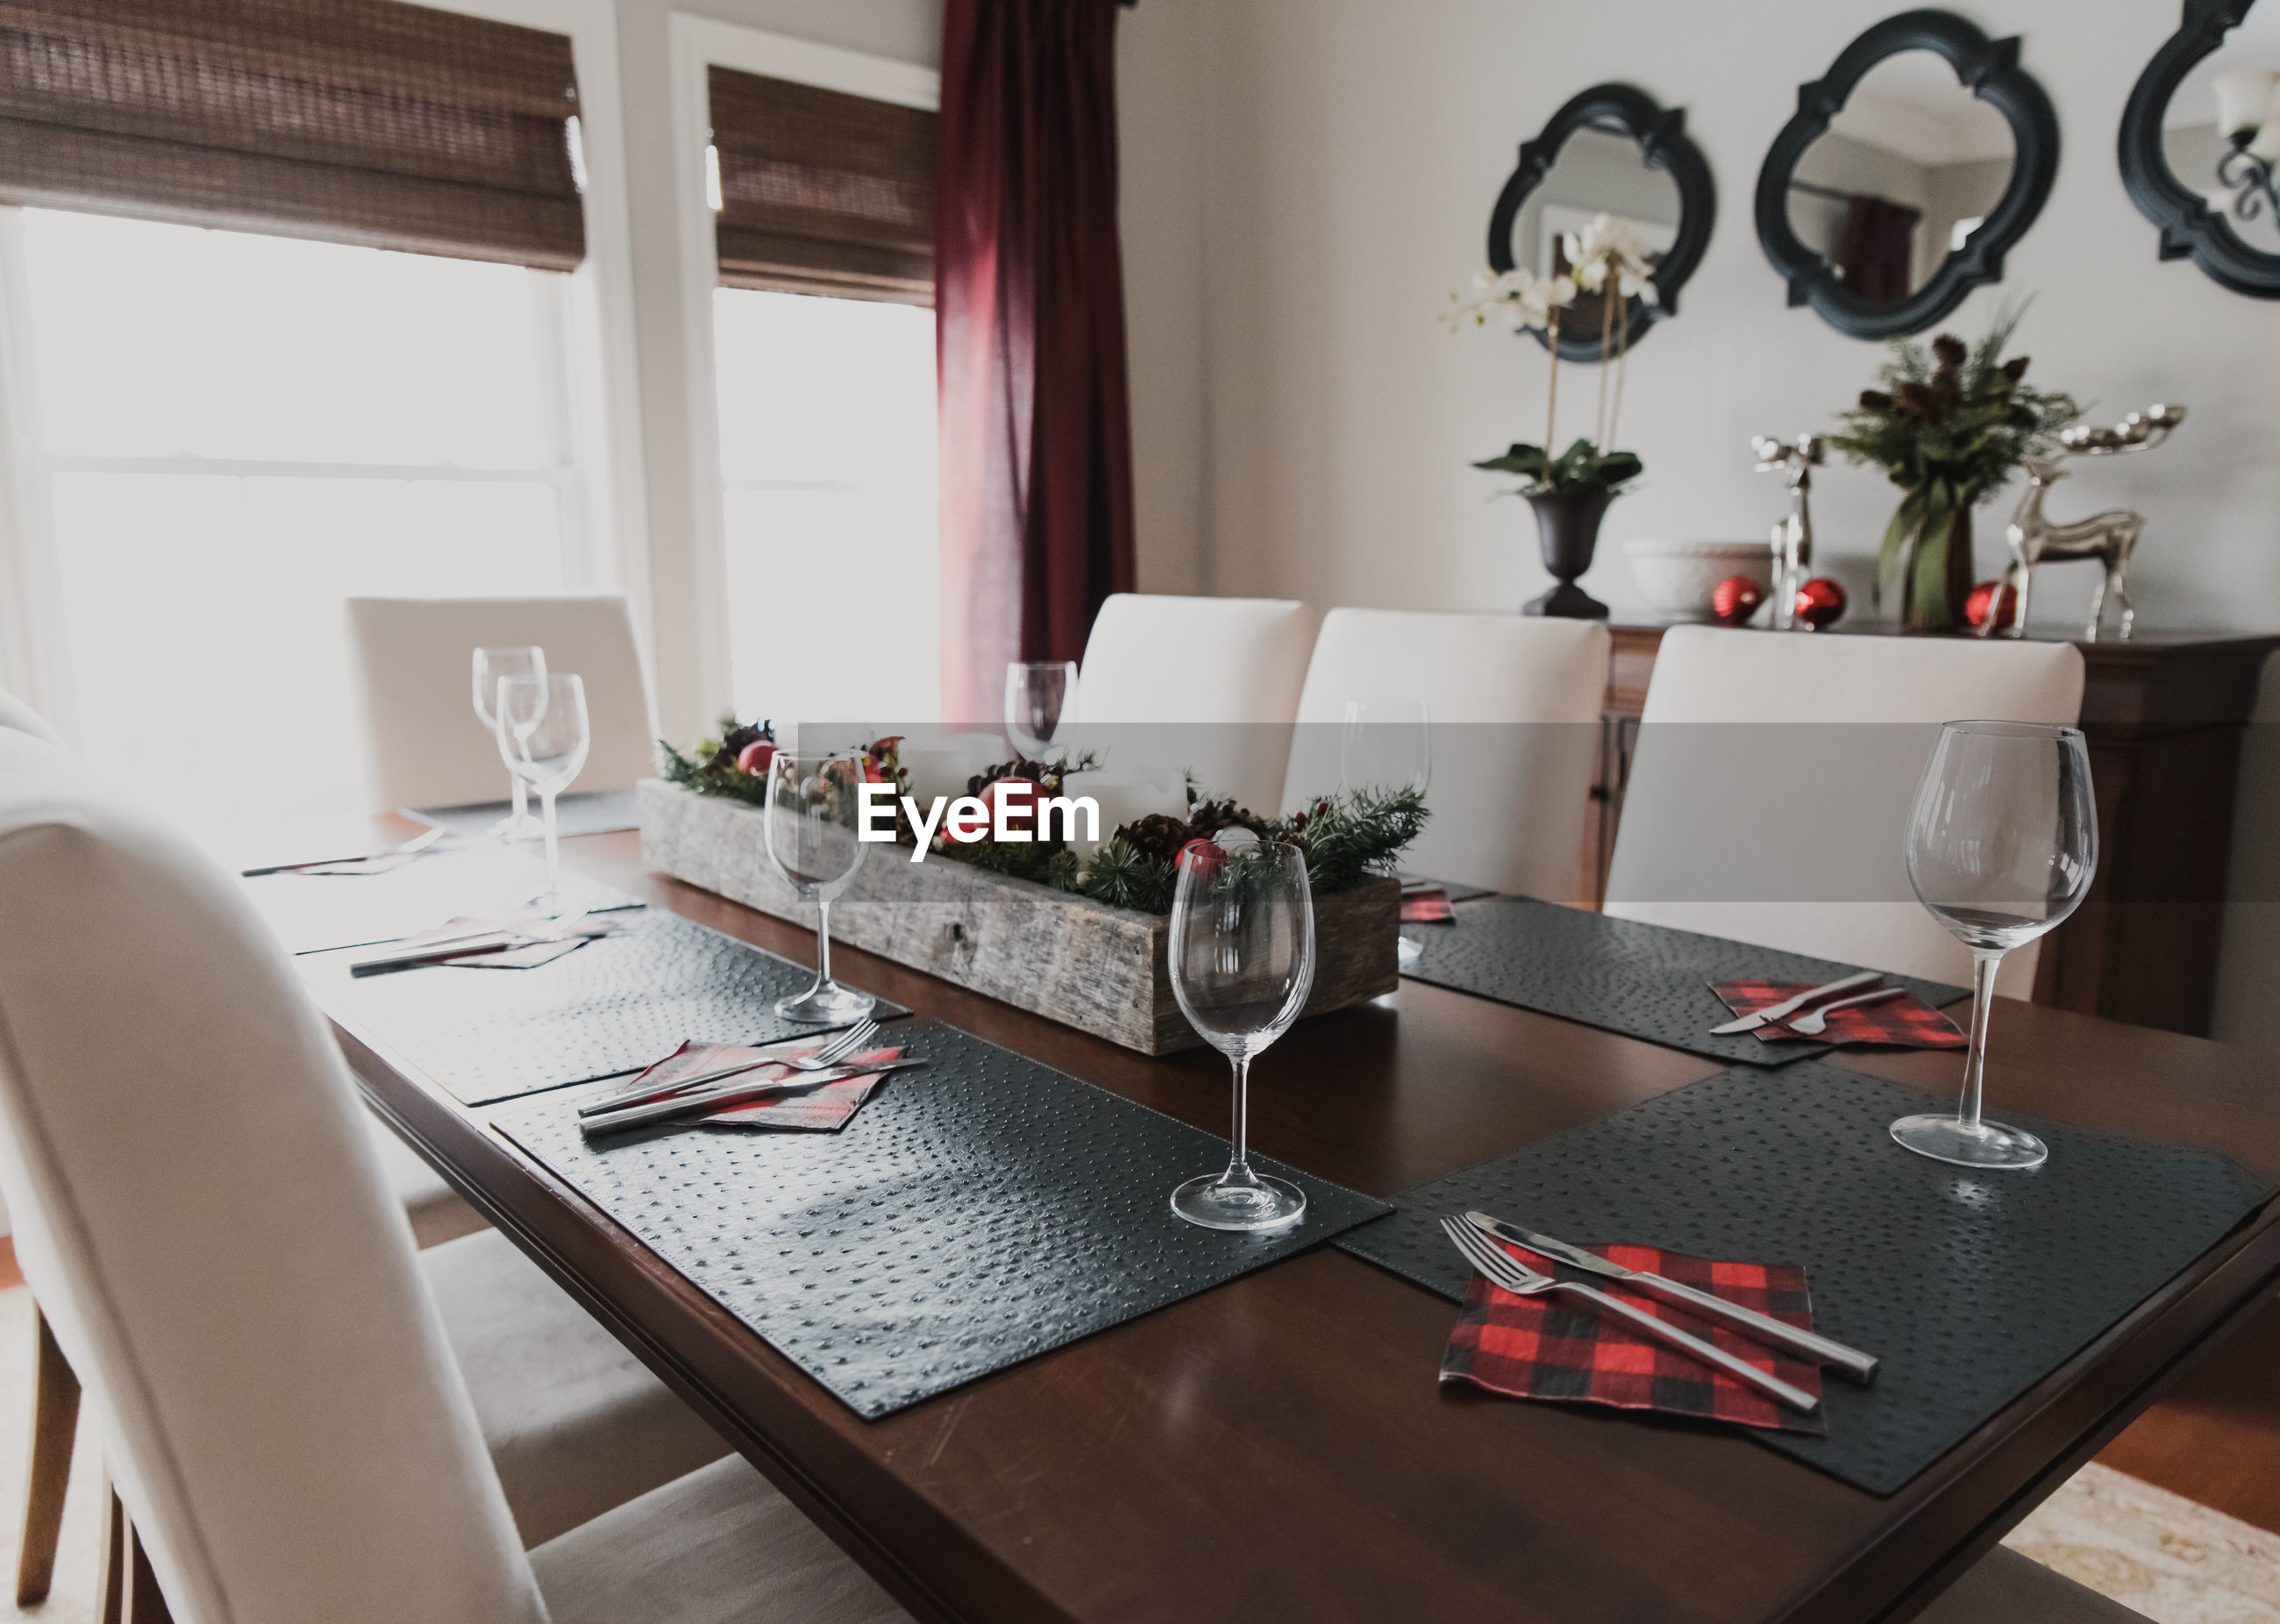 VIEW OF DINING TABLE